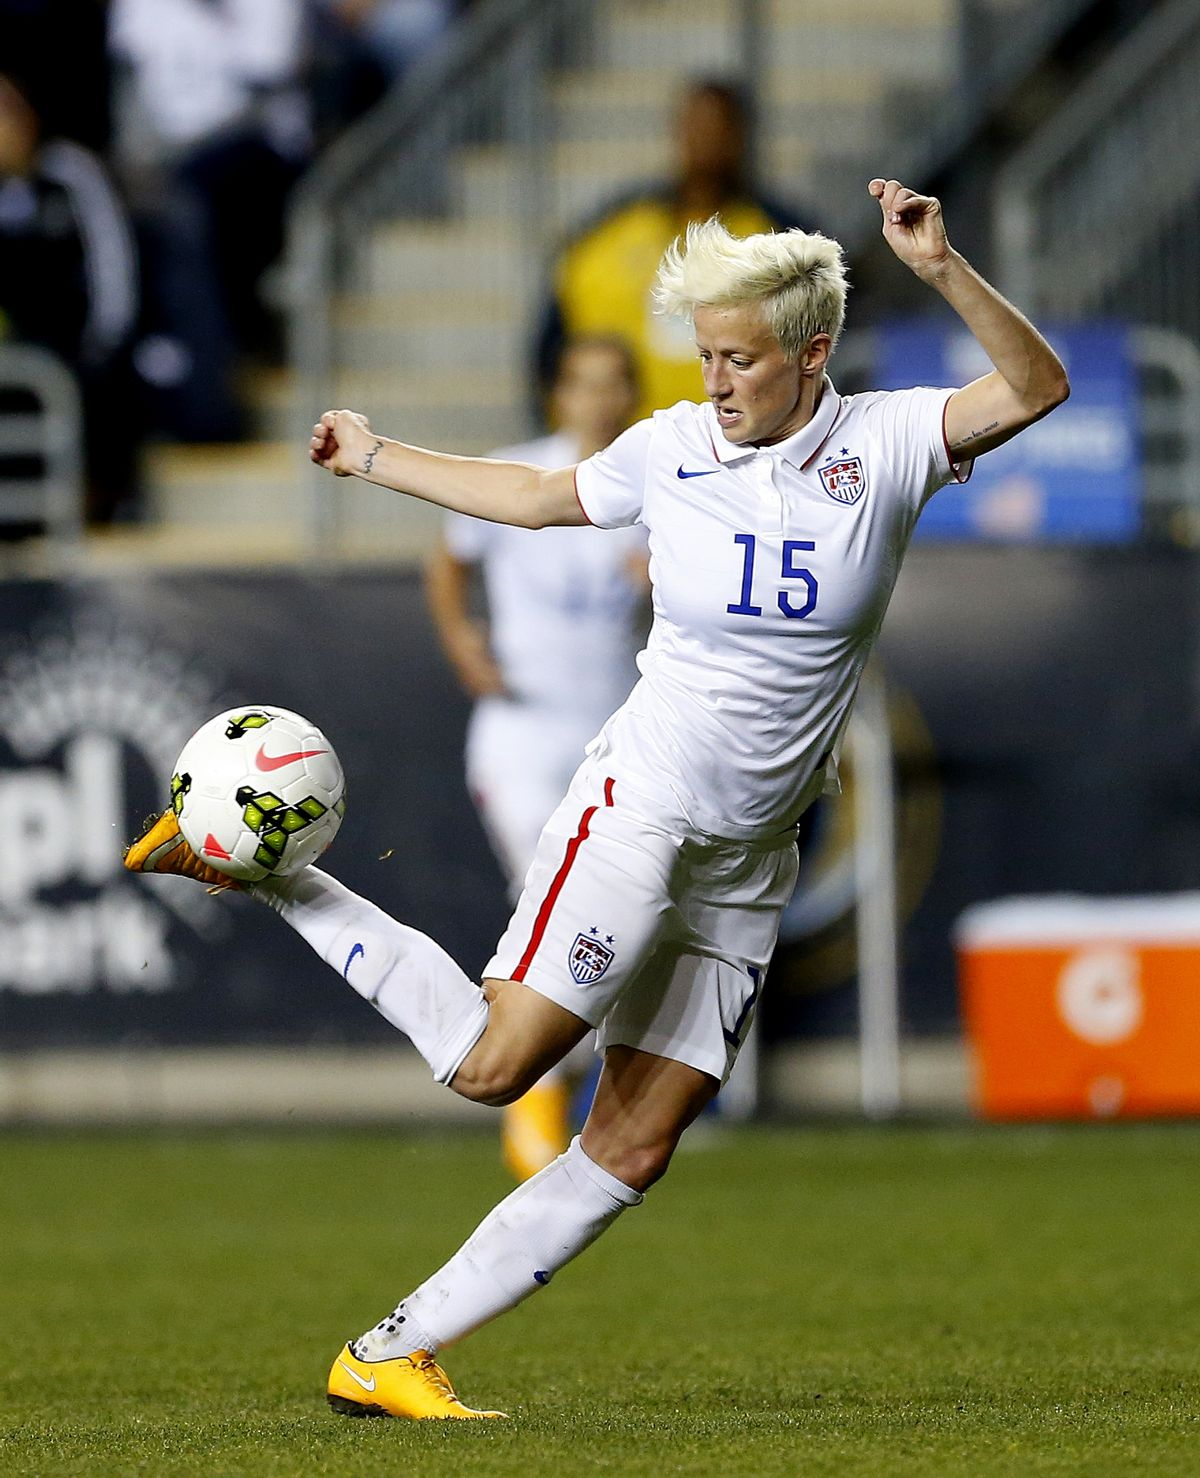 FILE - In this Oct. 24, 2014, file photo, United States midfielder Megan Rapinoe (15) against Mexico in the second half during a CONCACAF semifinal soccer match in Chester, Pa. Five players from the World Cup-winning U.S. national team have accused the U.S. Soccer Federation of wage discrimination in an action filed with the Equal Employment Opportunity Commission. Alex Morgan, Carli Lloyd, Megan Rapinoe, Becky Sauerbrunn and Hope Solo maintain in the EEOC filing they were payed nearly four times less than their male counterparts on the U.S. men's national team. The filing was announced in a press release on Thursday, March 31, 2016. (AP Photo/Rich Schultz, File) (AP)